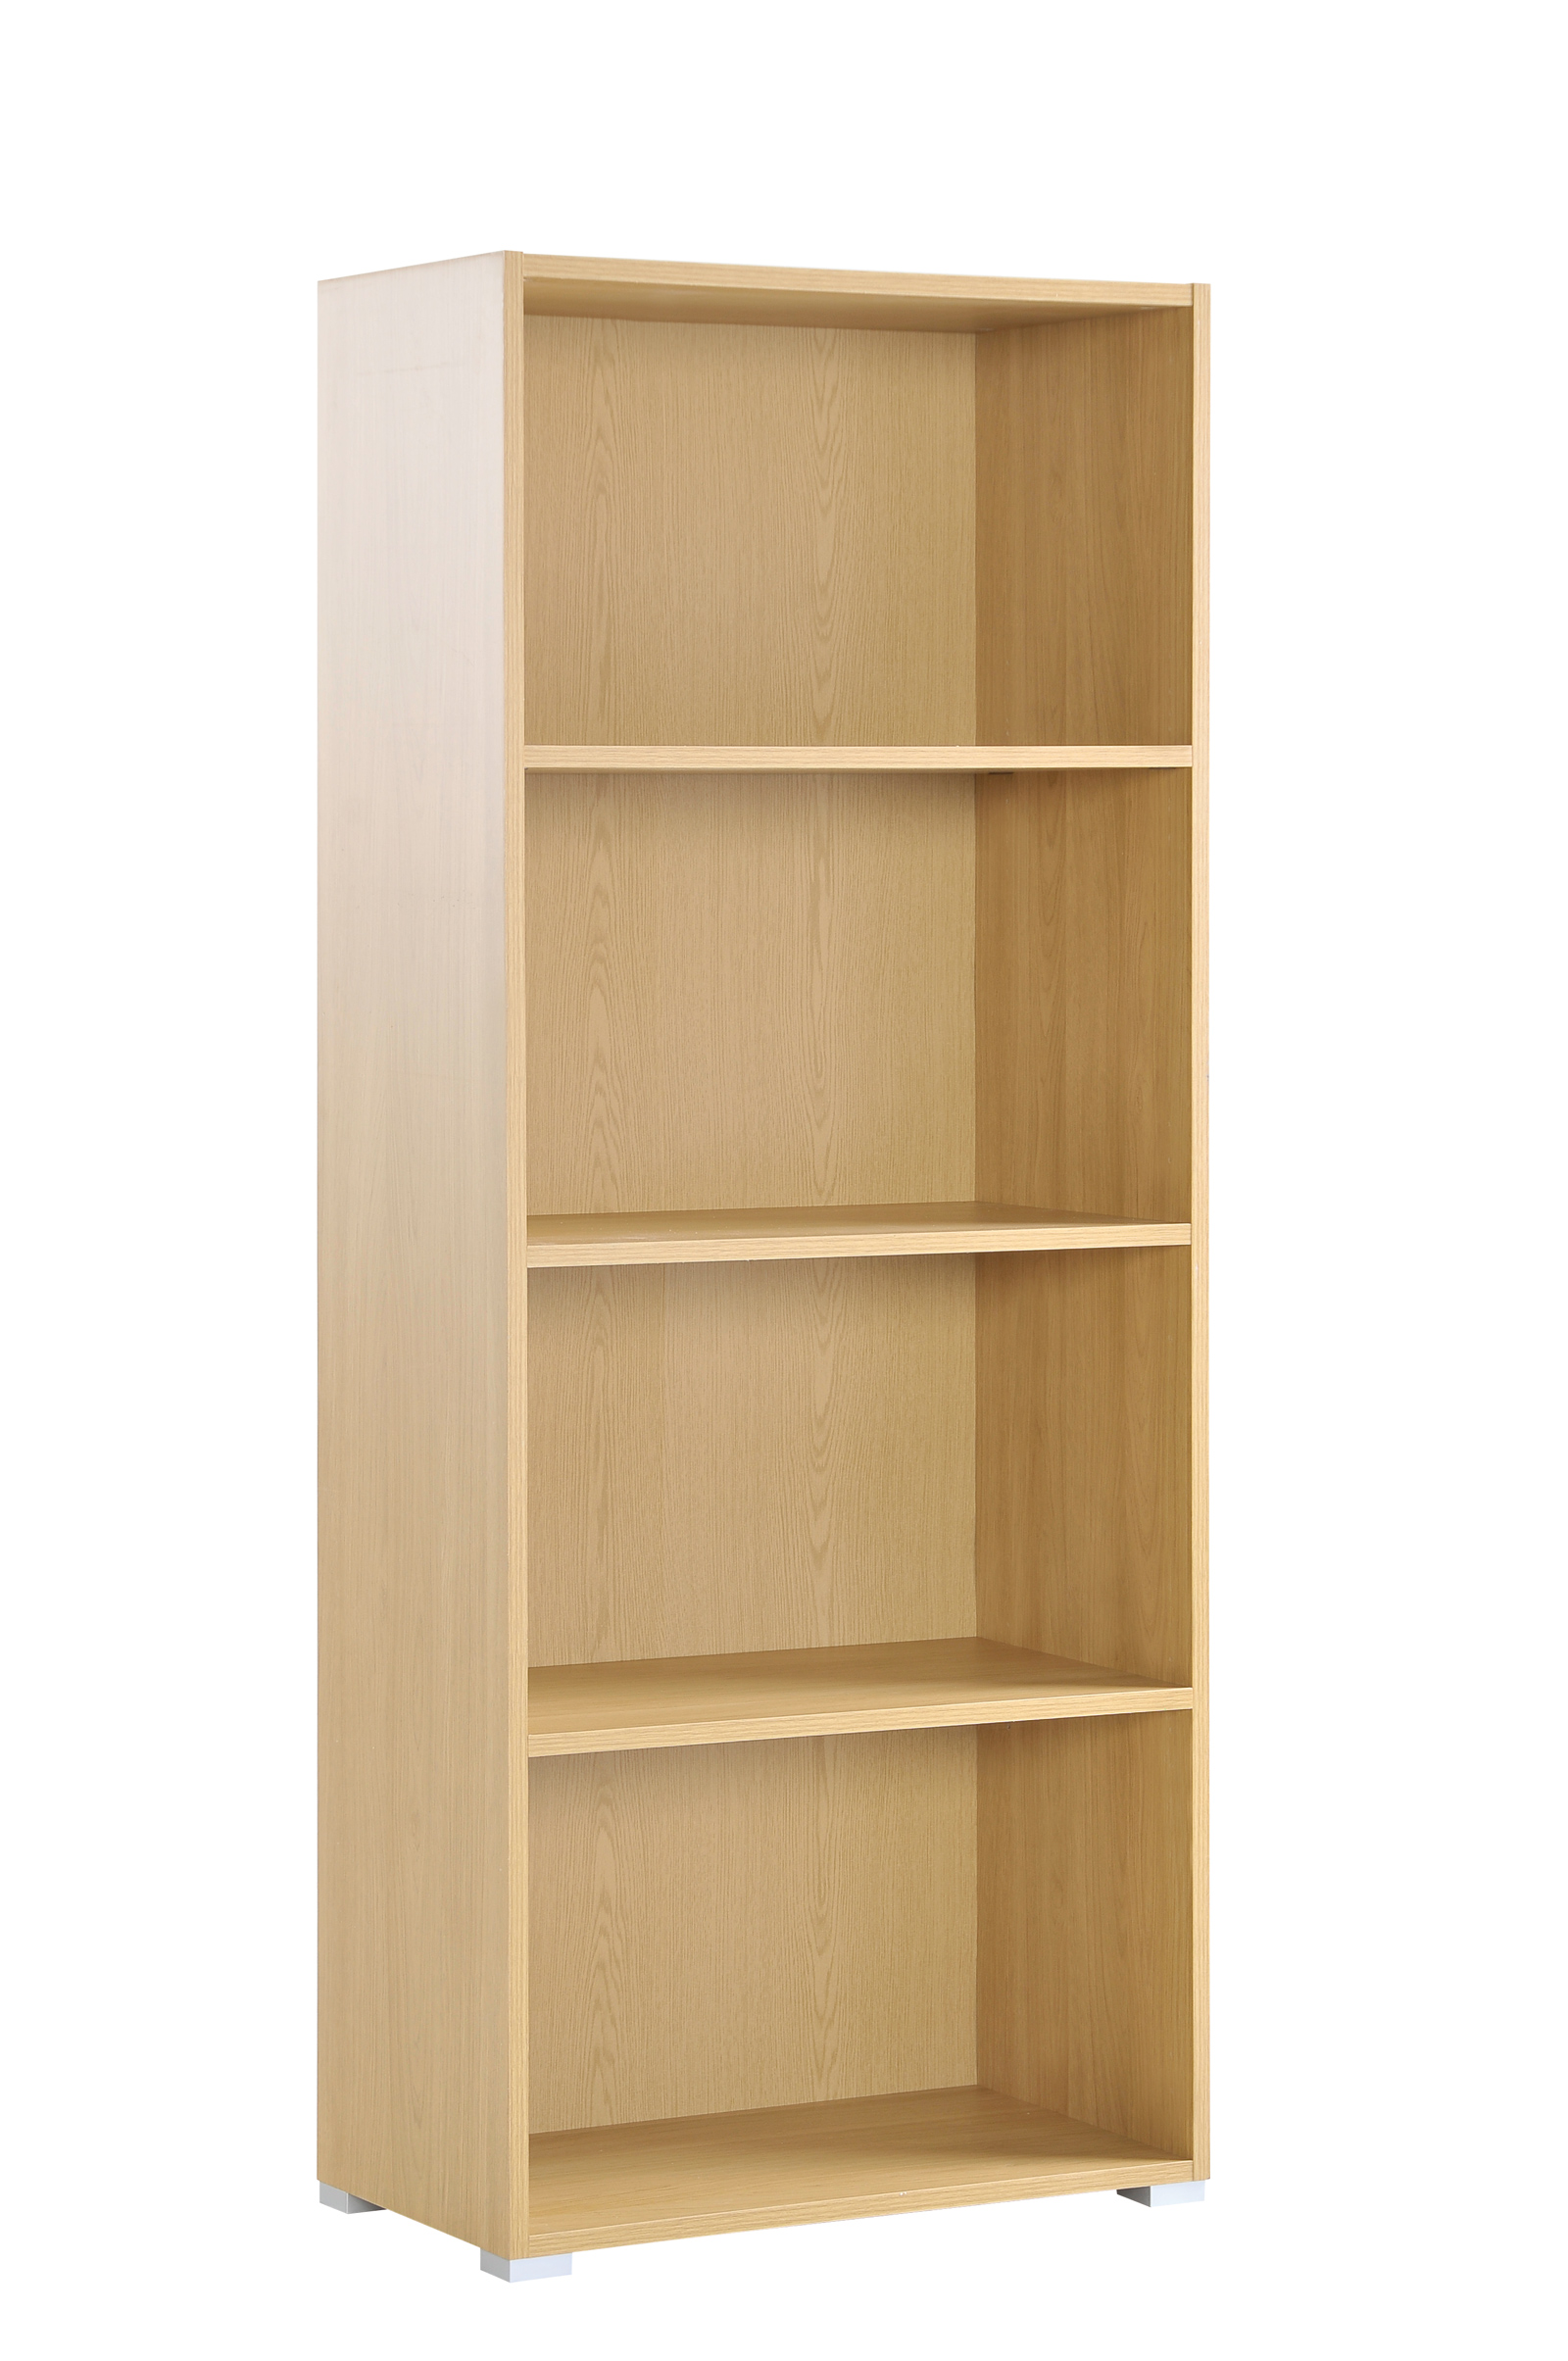 Dams Urban/Eco Bookcase